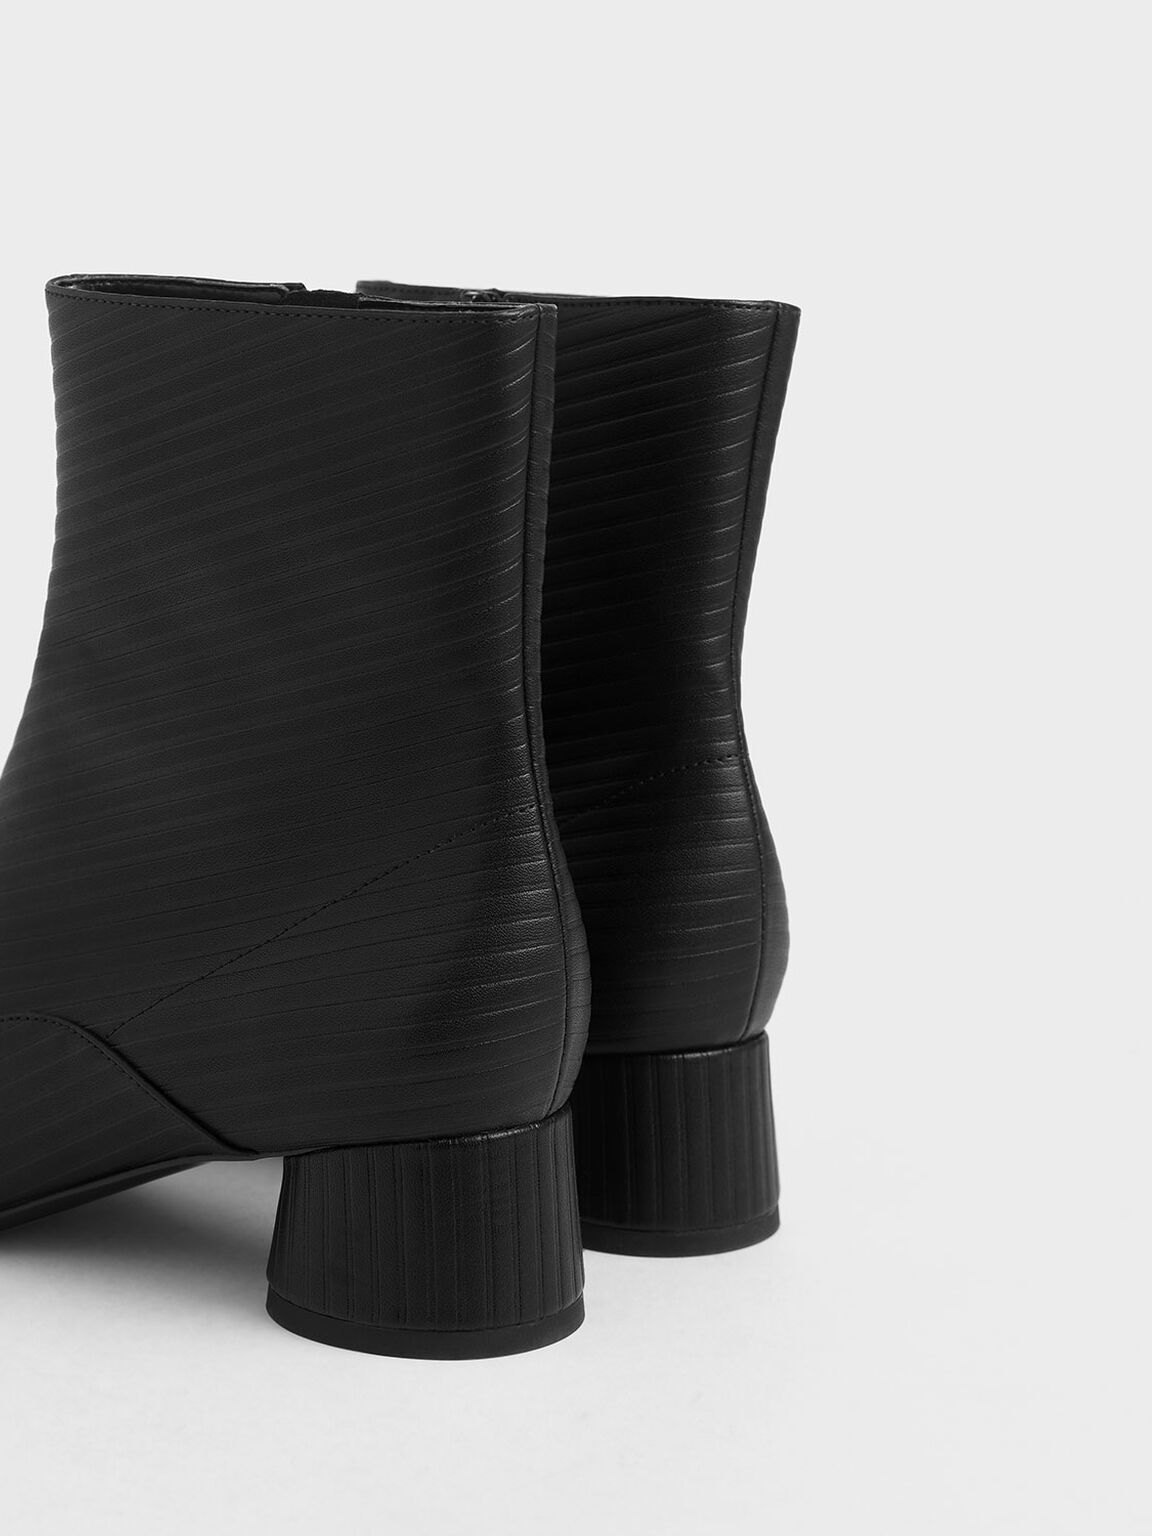 Embossed Cylindrical Heel Ankle Boots, Black, hi-res